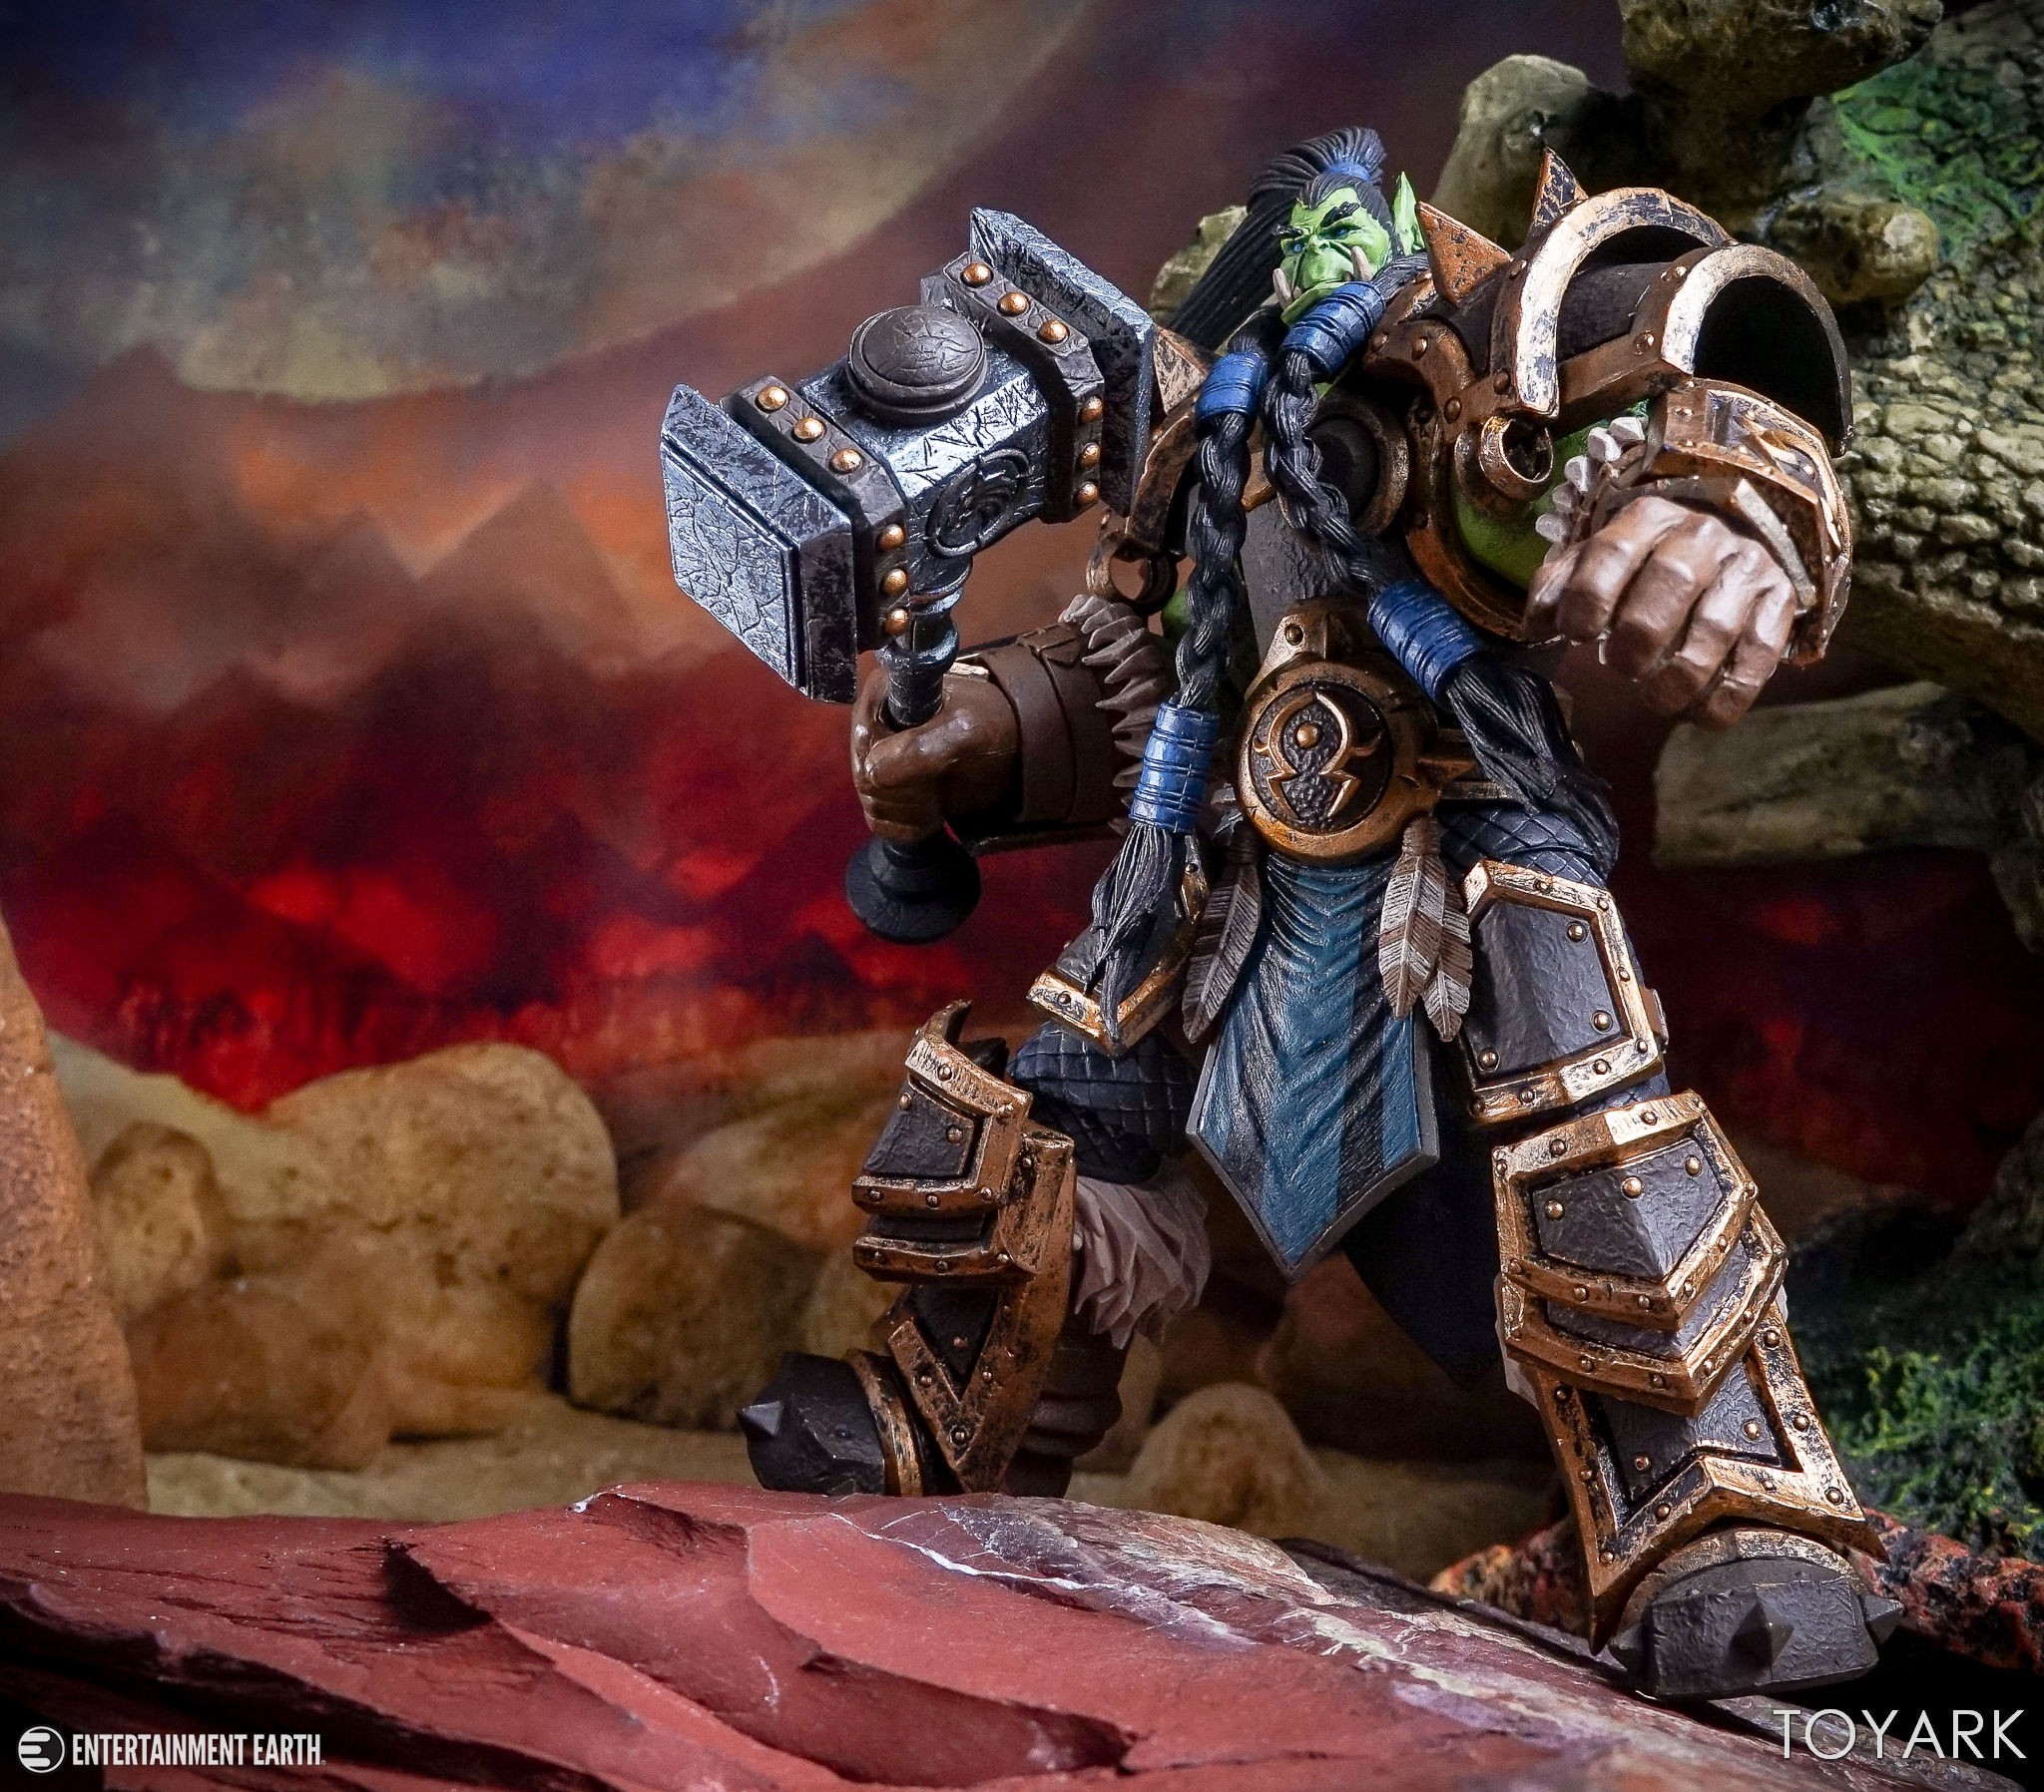 http://news.toyark.com/wp-content/uploads/sites/4/2017/08/NECA-Heroes-of-the-Storm-Thrall-035.jpg